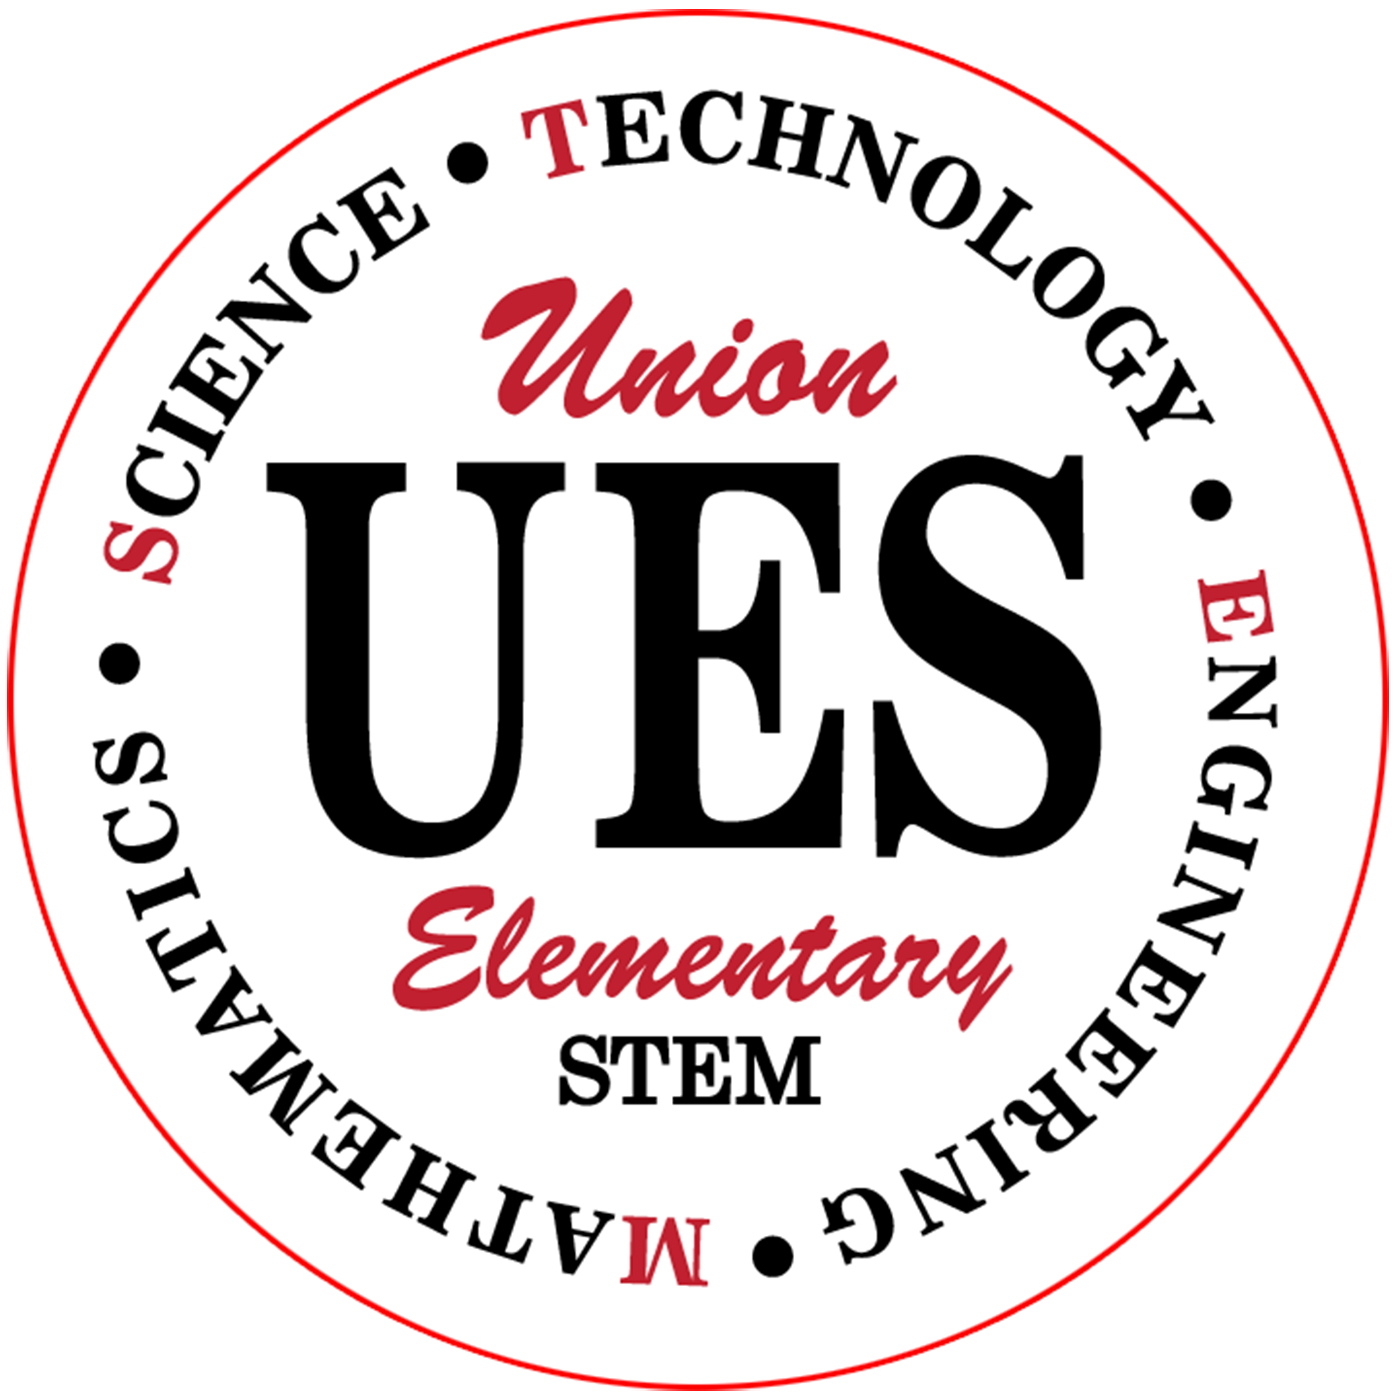 Union Elementary STEM and Demonstration School